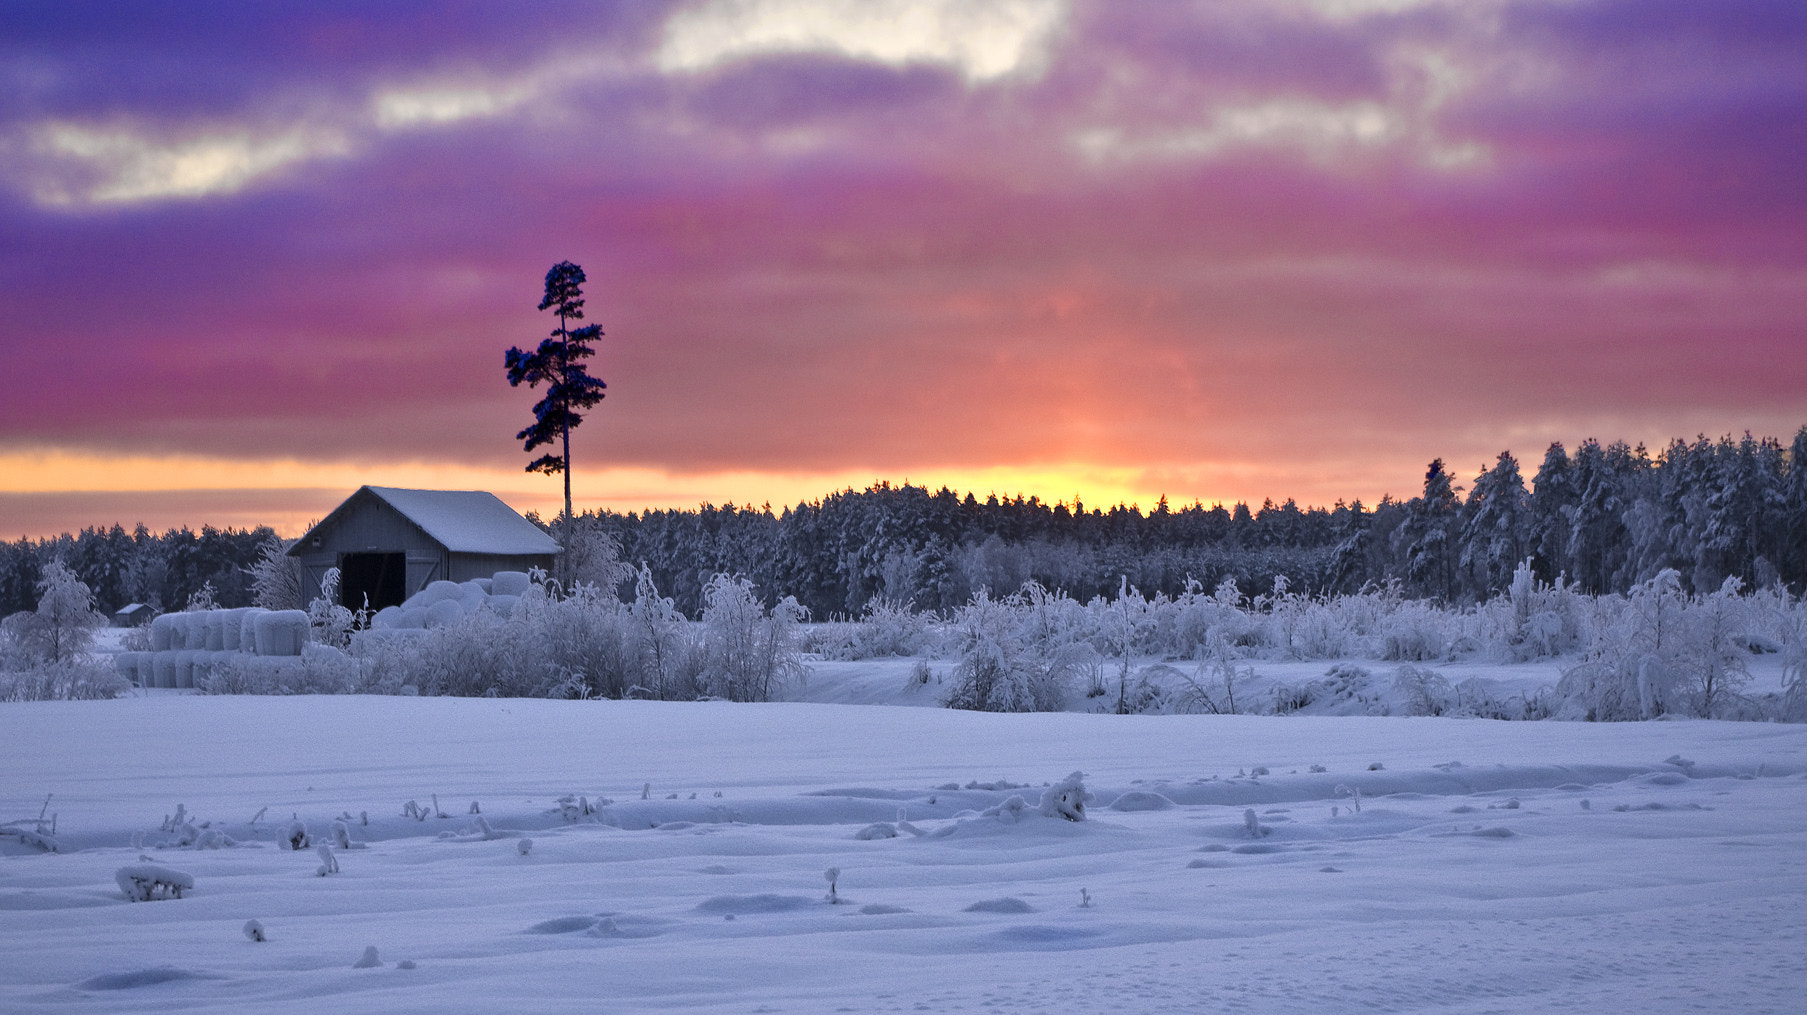 Photograph Old Barn At Sunset by Sten Wiklund on 500px